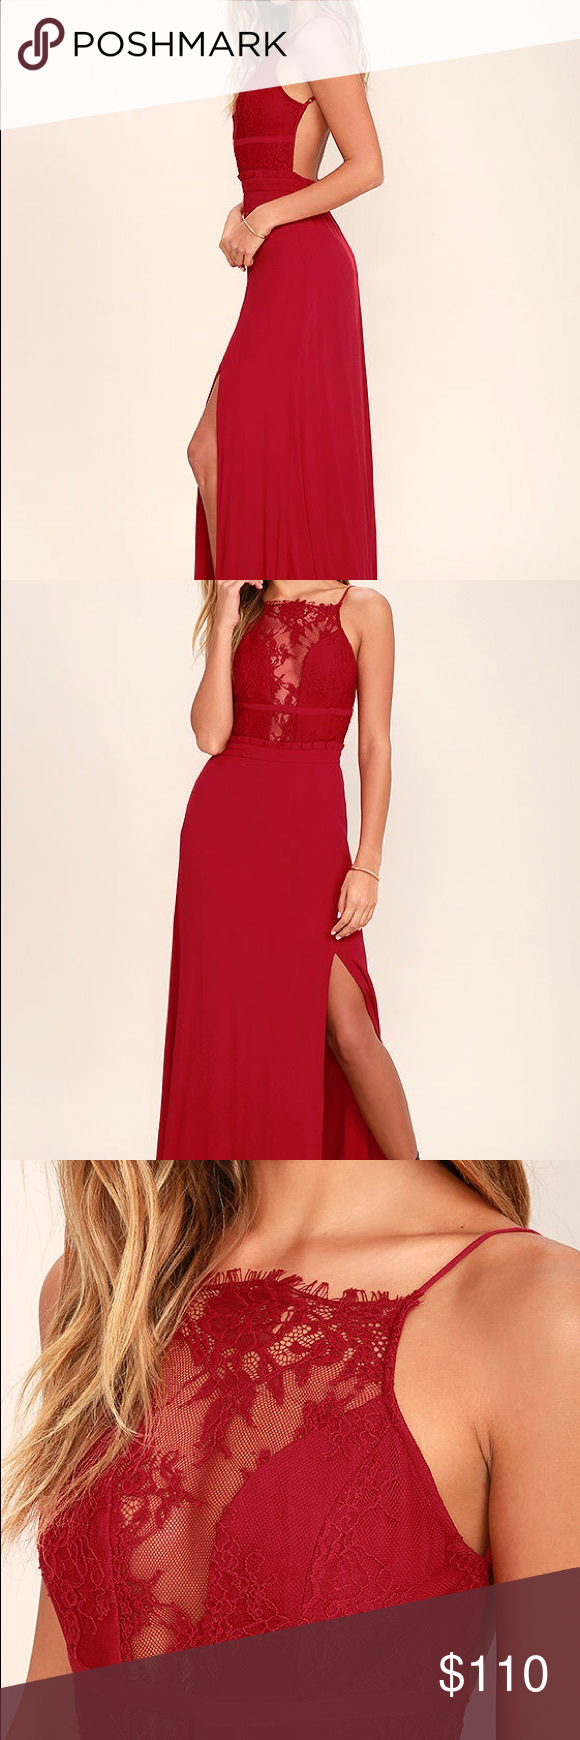 872fbdd6472 NBD red lace backless maxi dress All eyes will be on you with every step you